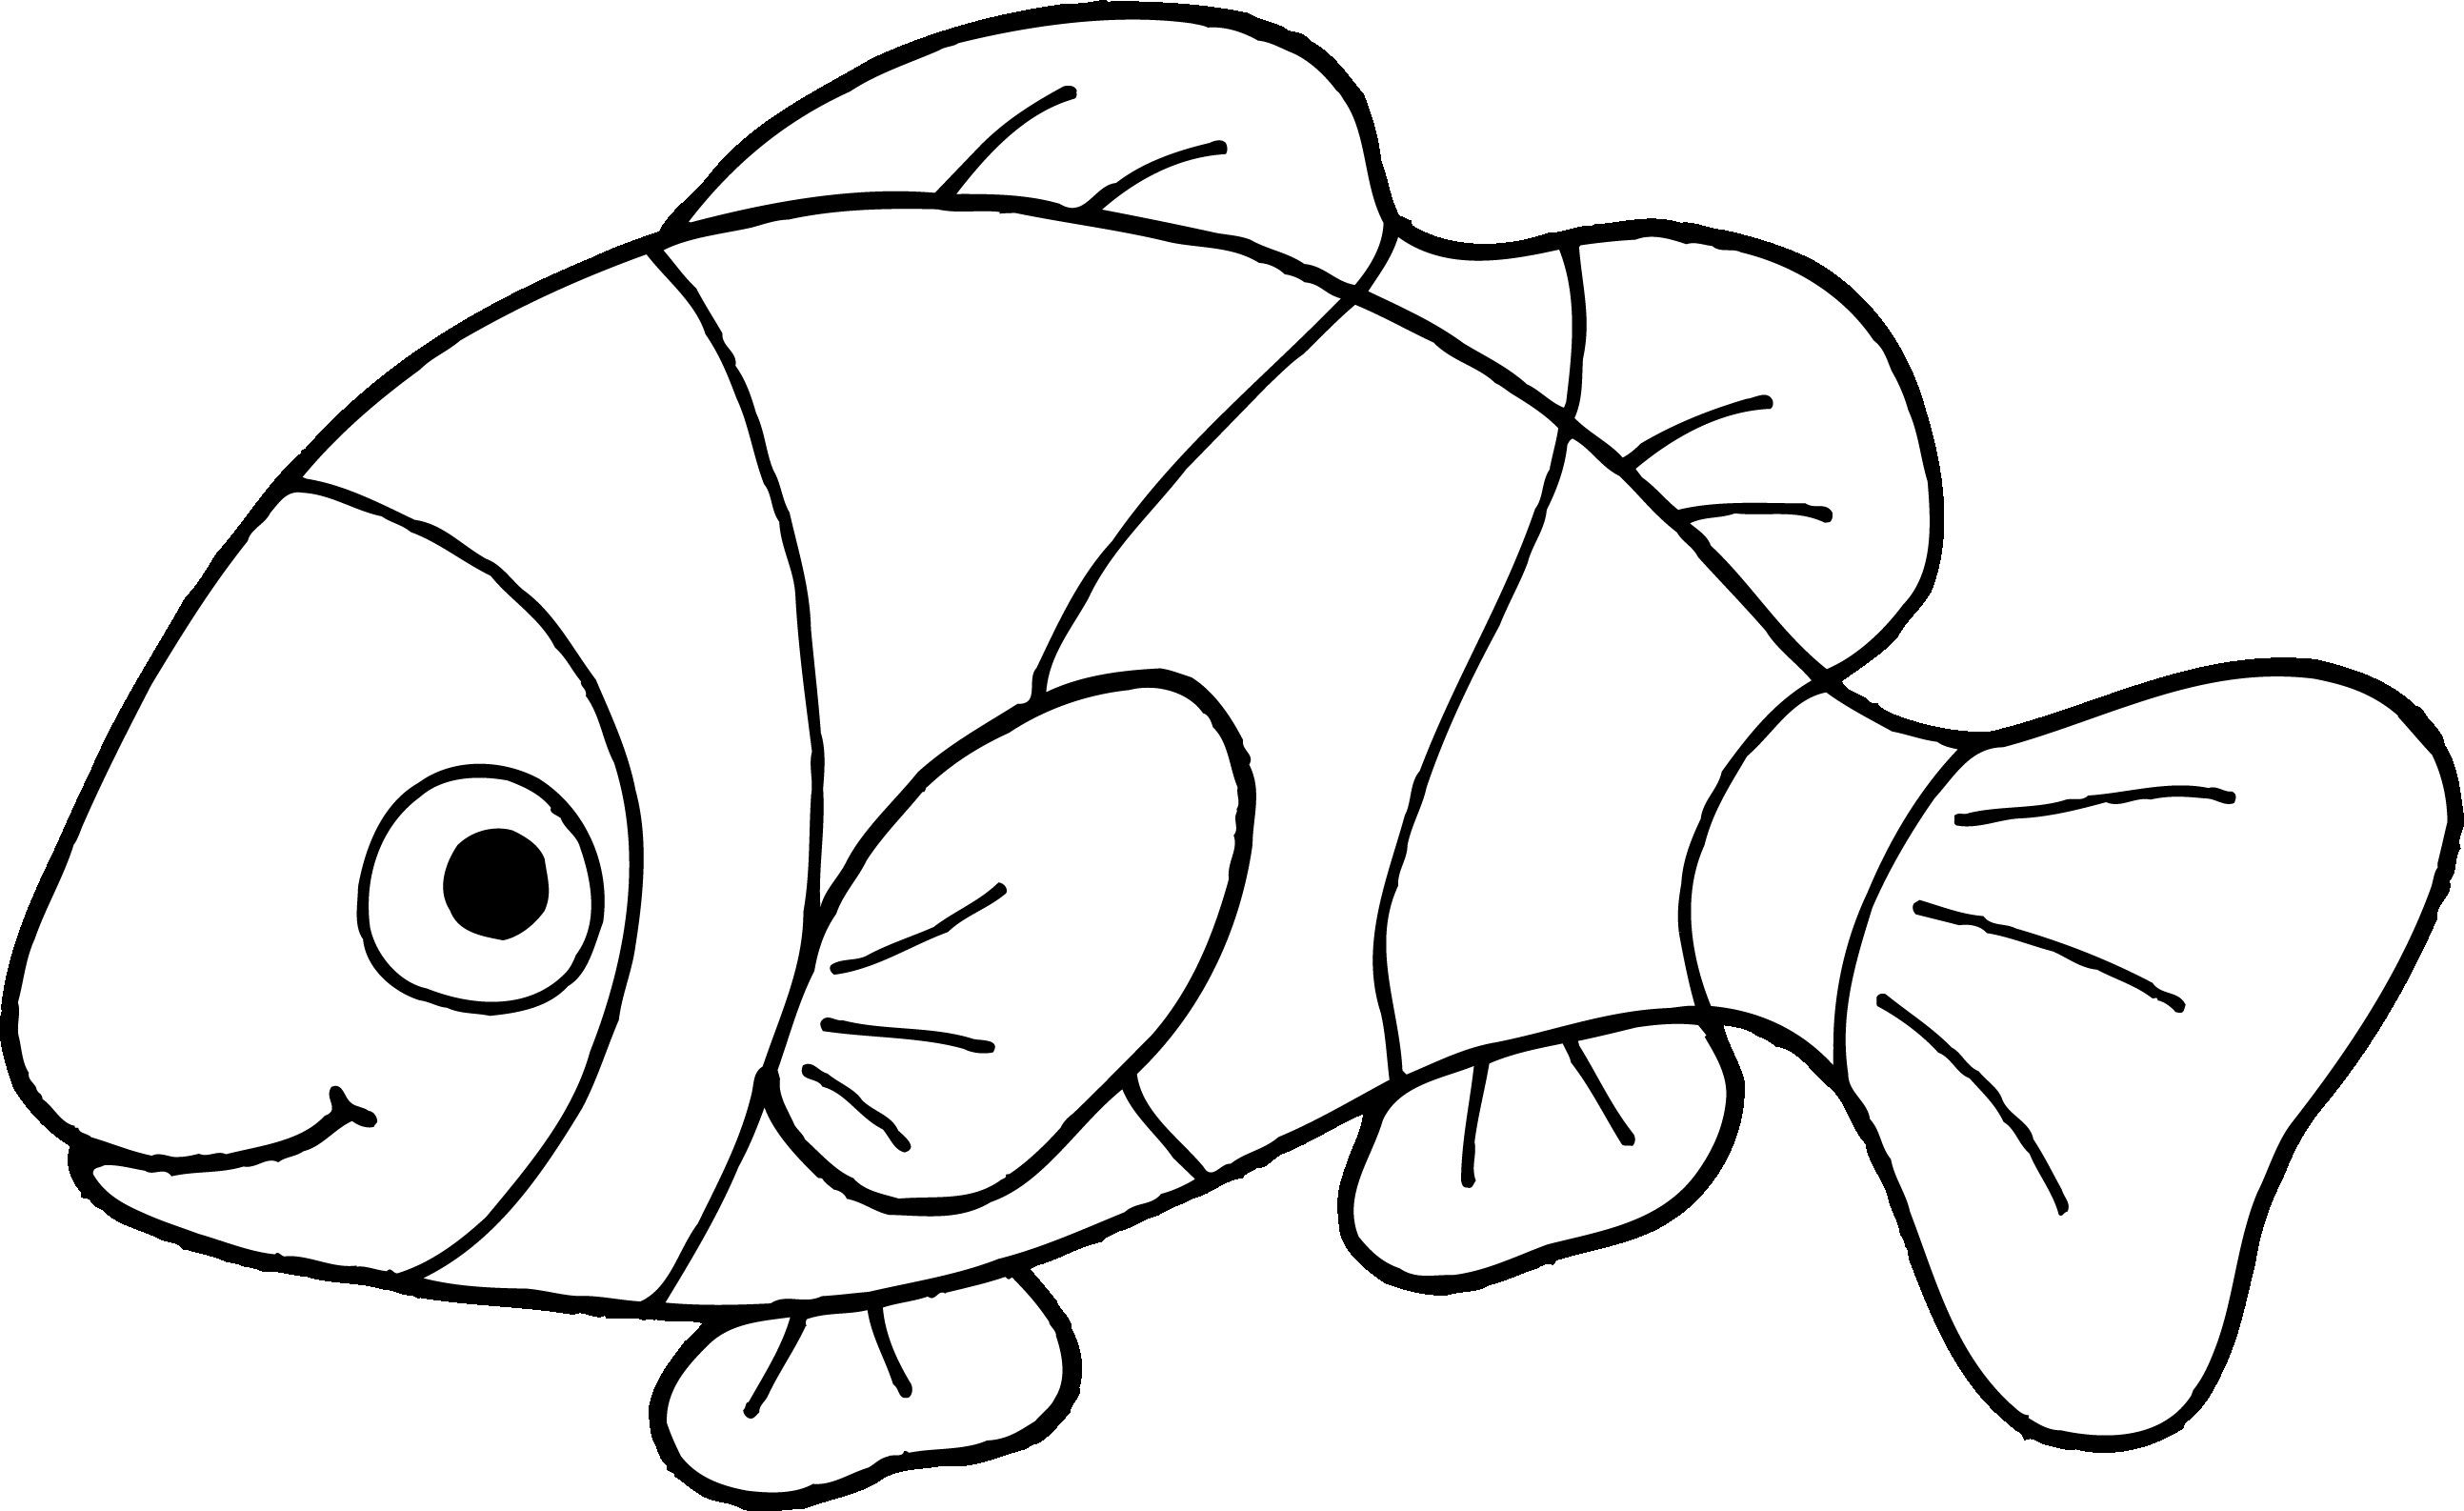 Fish outline coloring. Clownfish clip art clipart